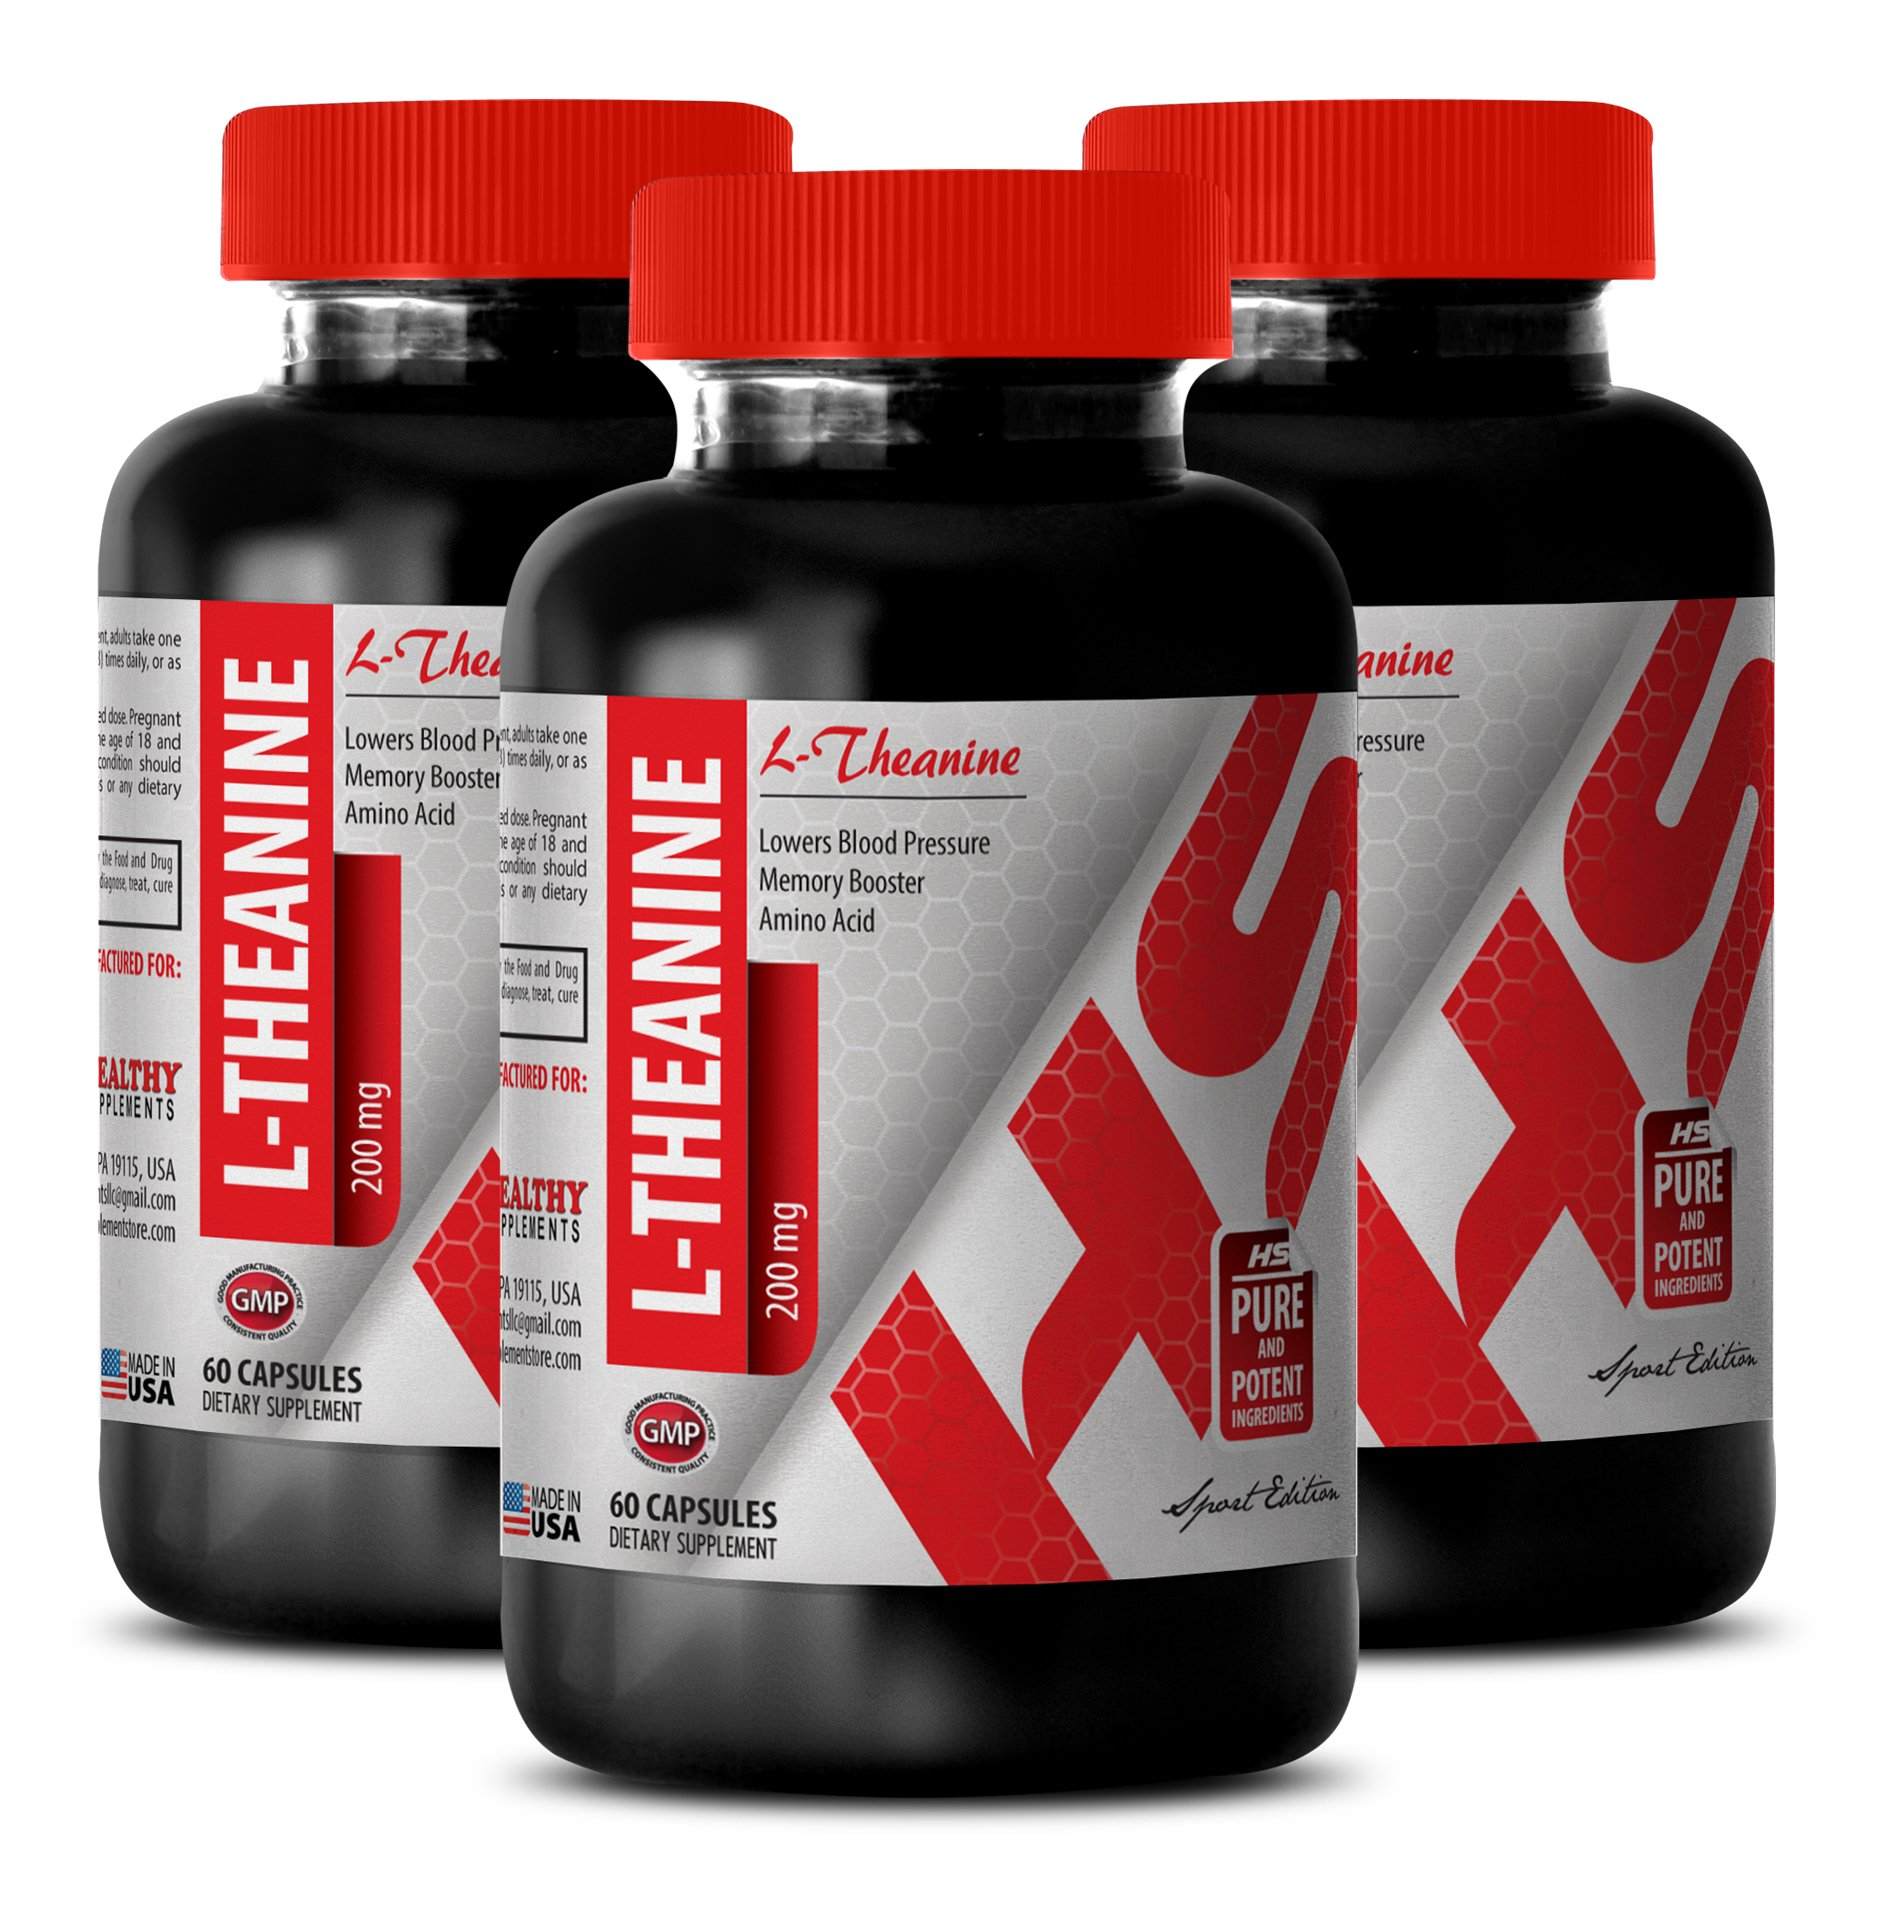 L-theanine supplement - NATURAL L-THEANINE 200MG - increase alertness (3 Bottles)